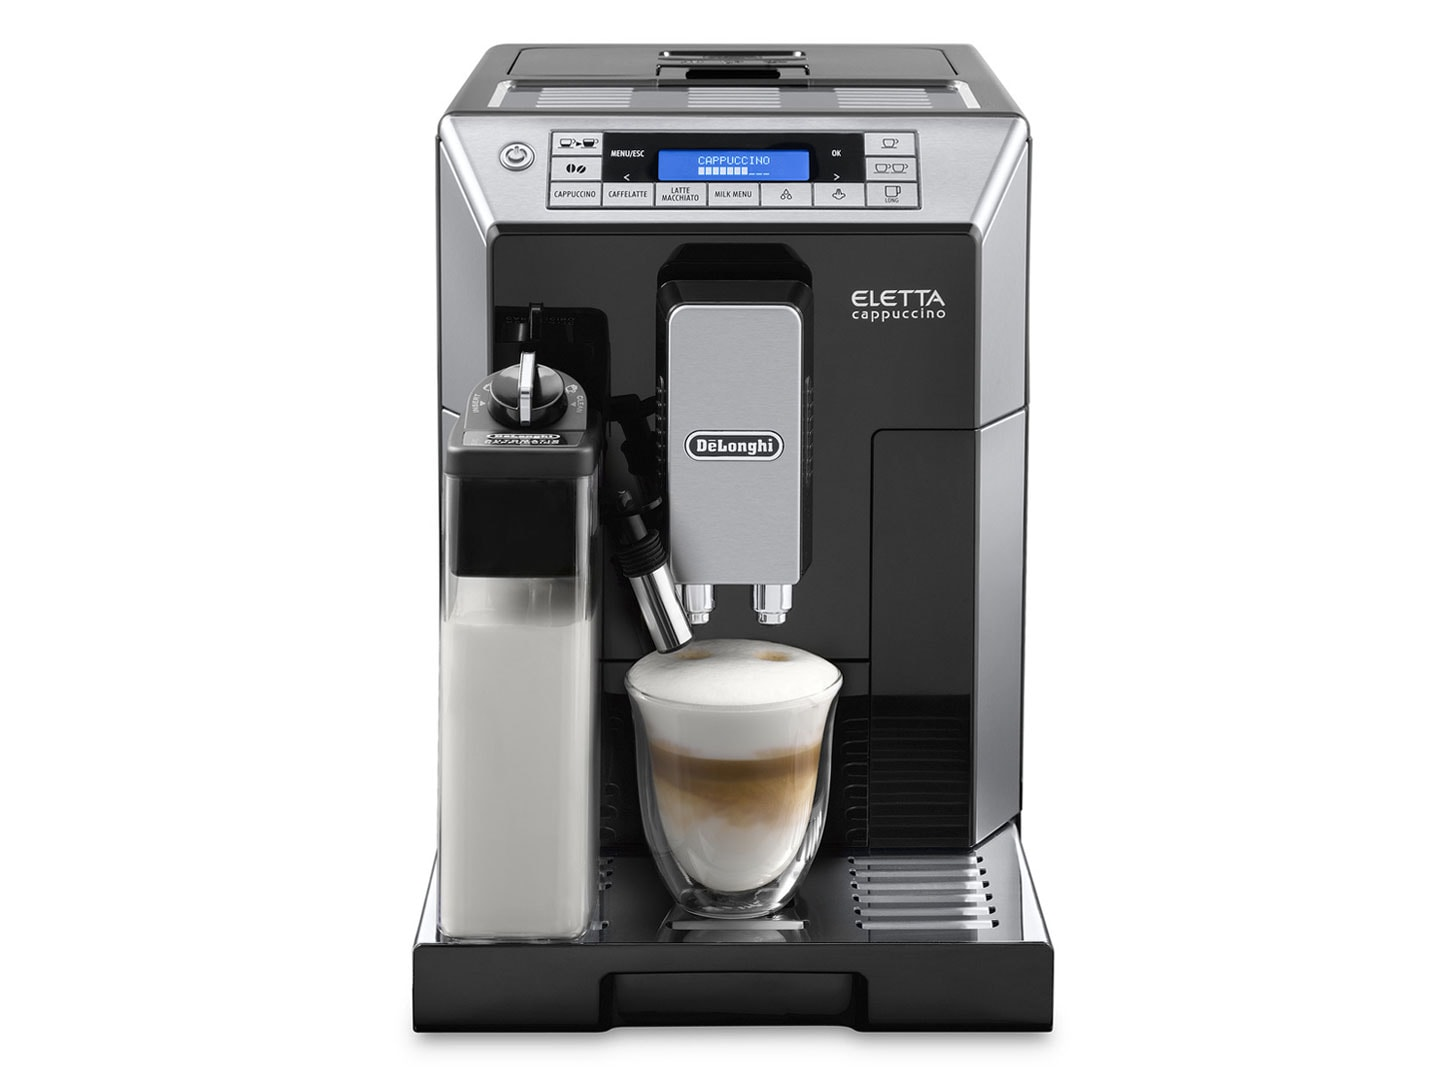 Eletta Cappuccino ECAM45760B automatic coffee machine, espresso machine, delonghi